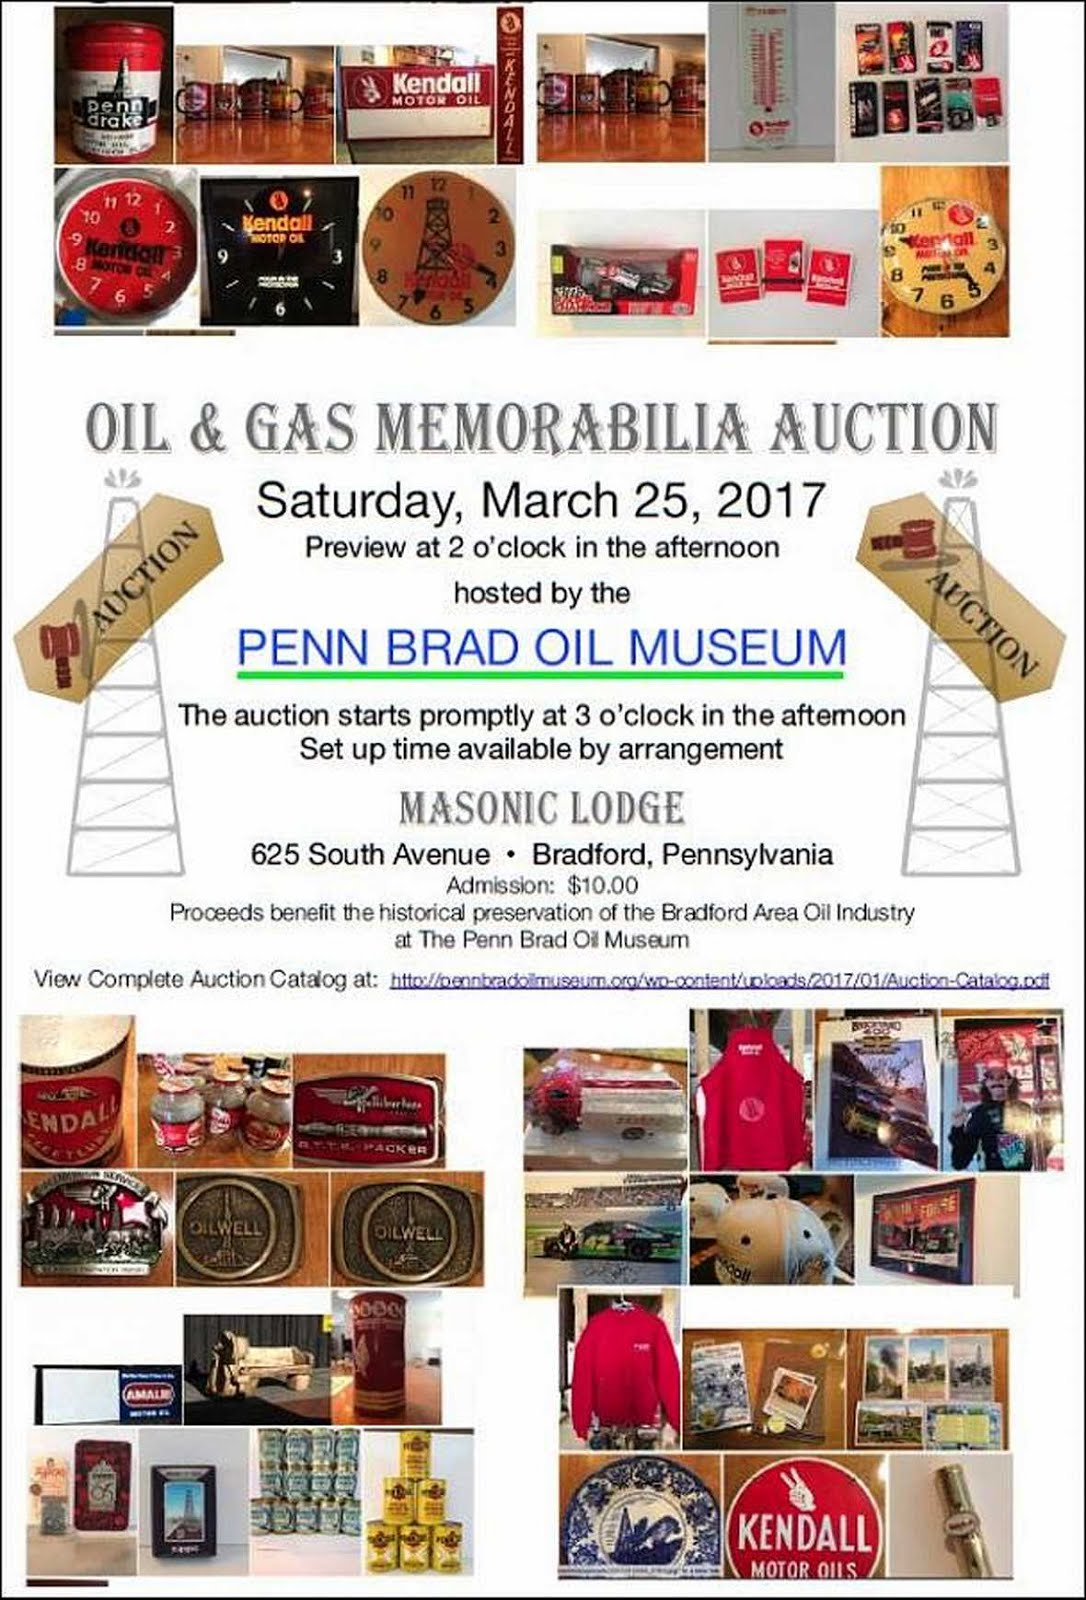 Brad Penn Memorabilia Auction